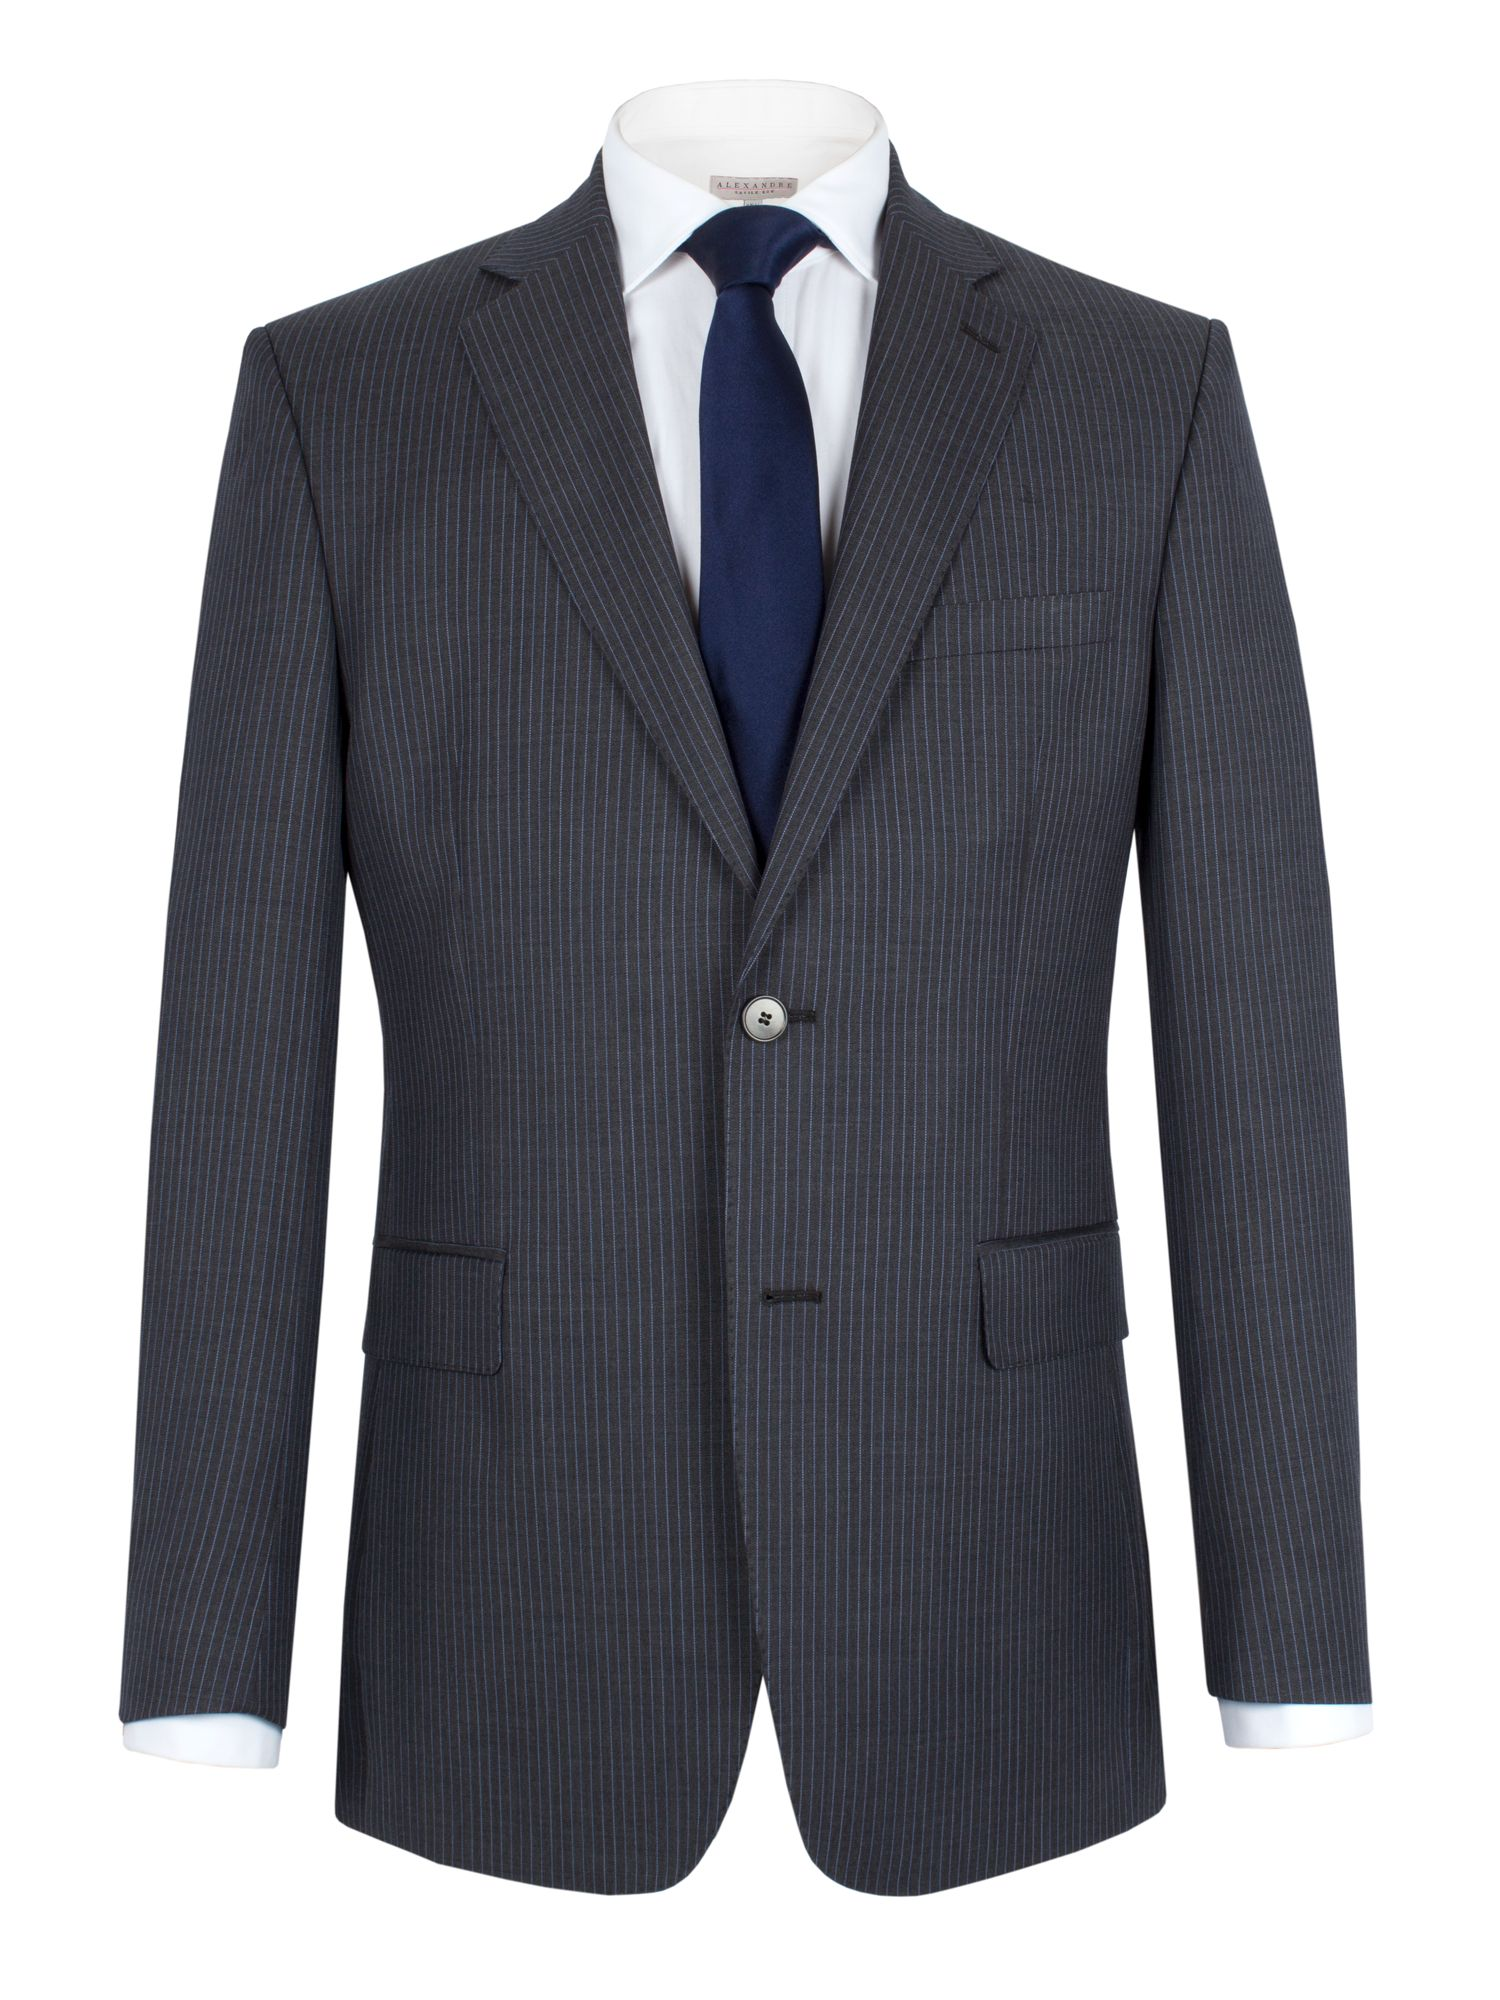 Stripe notch suit